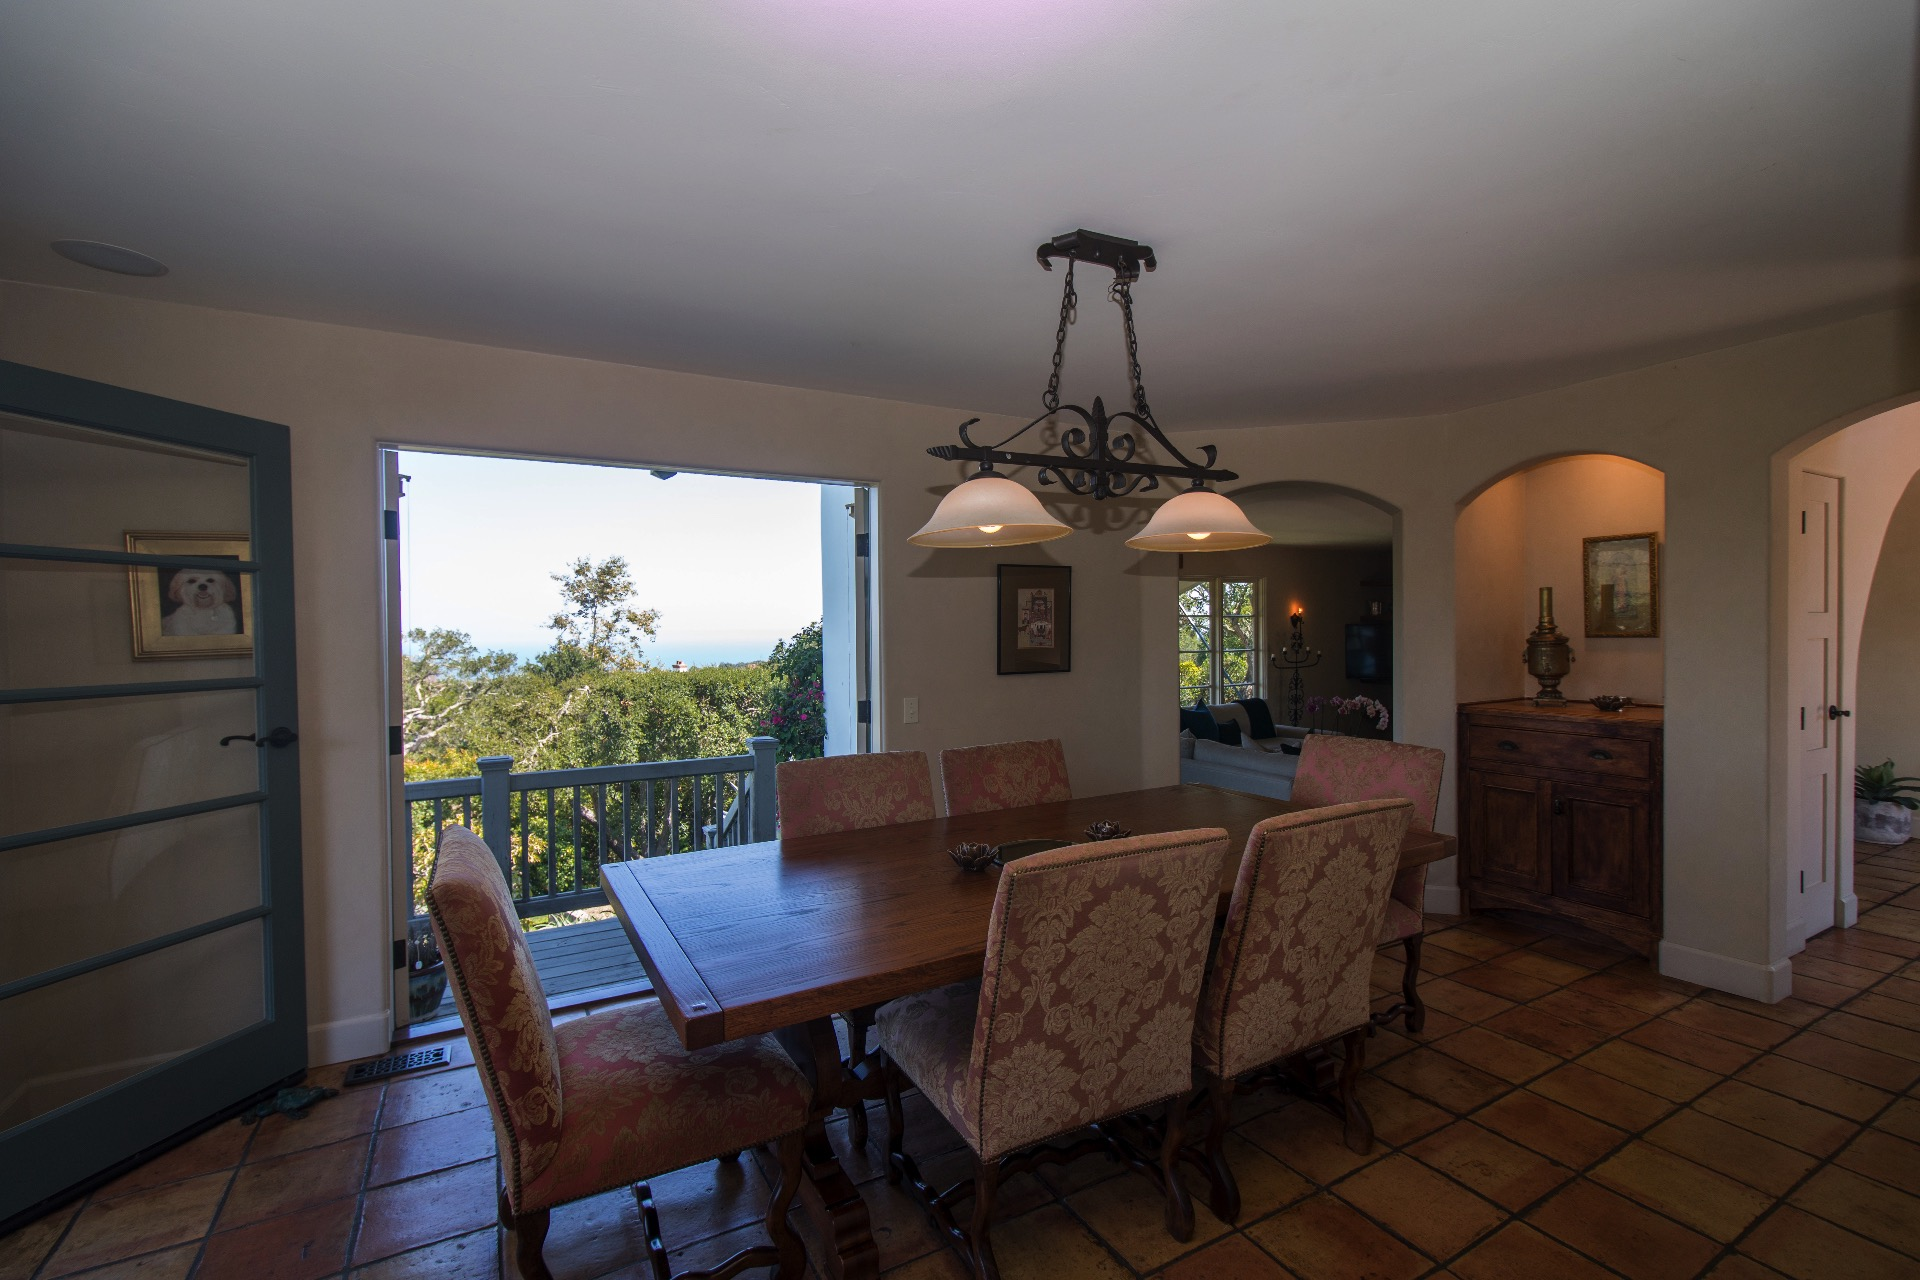 Dining room has views of the mountains and gardens